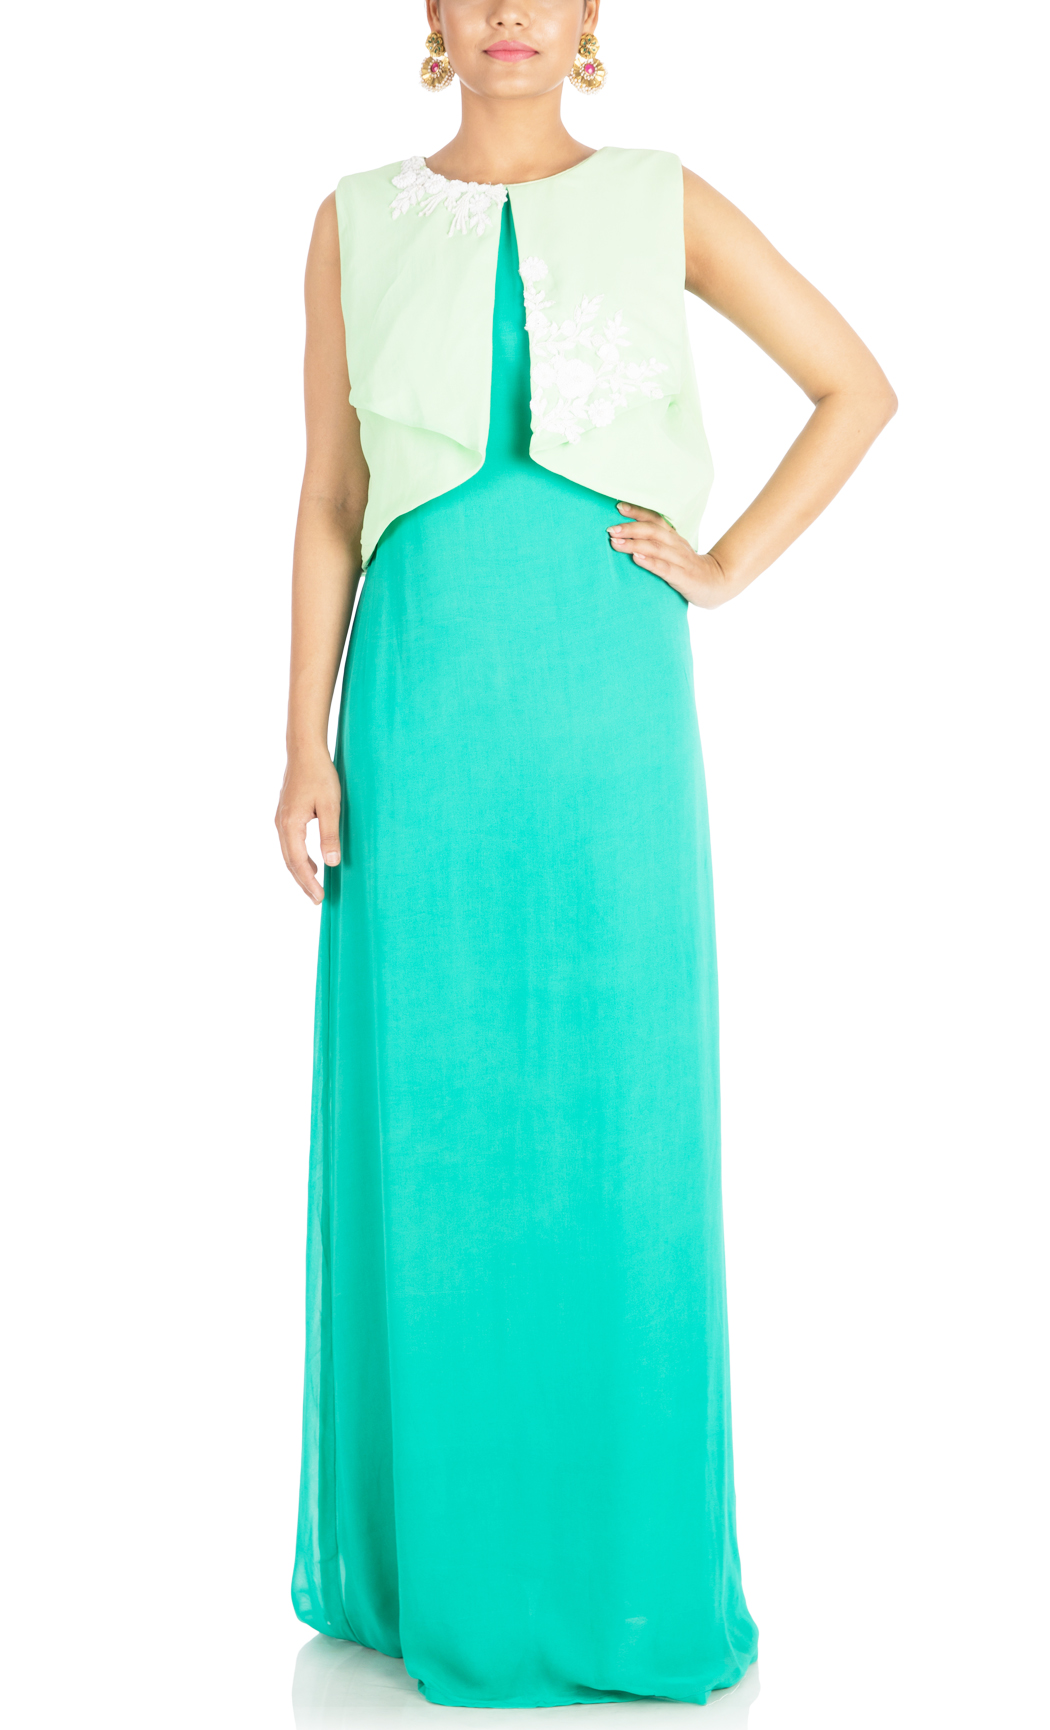 Green Tunic with a Pleated Yoke - Buy Online